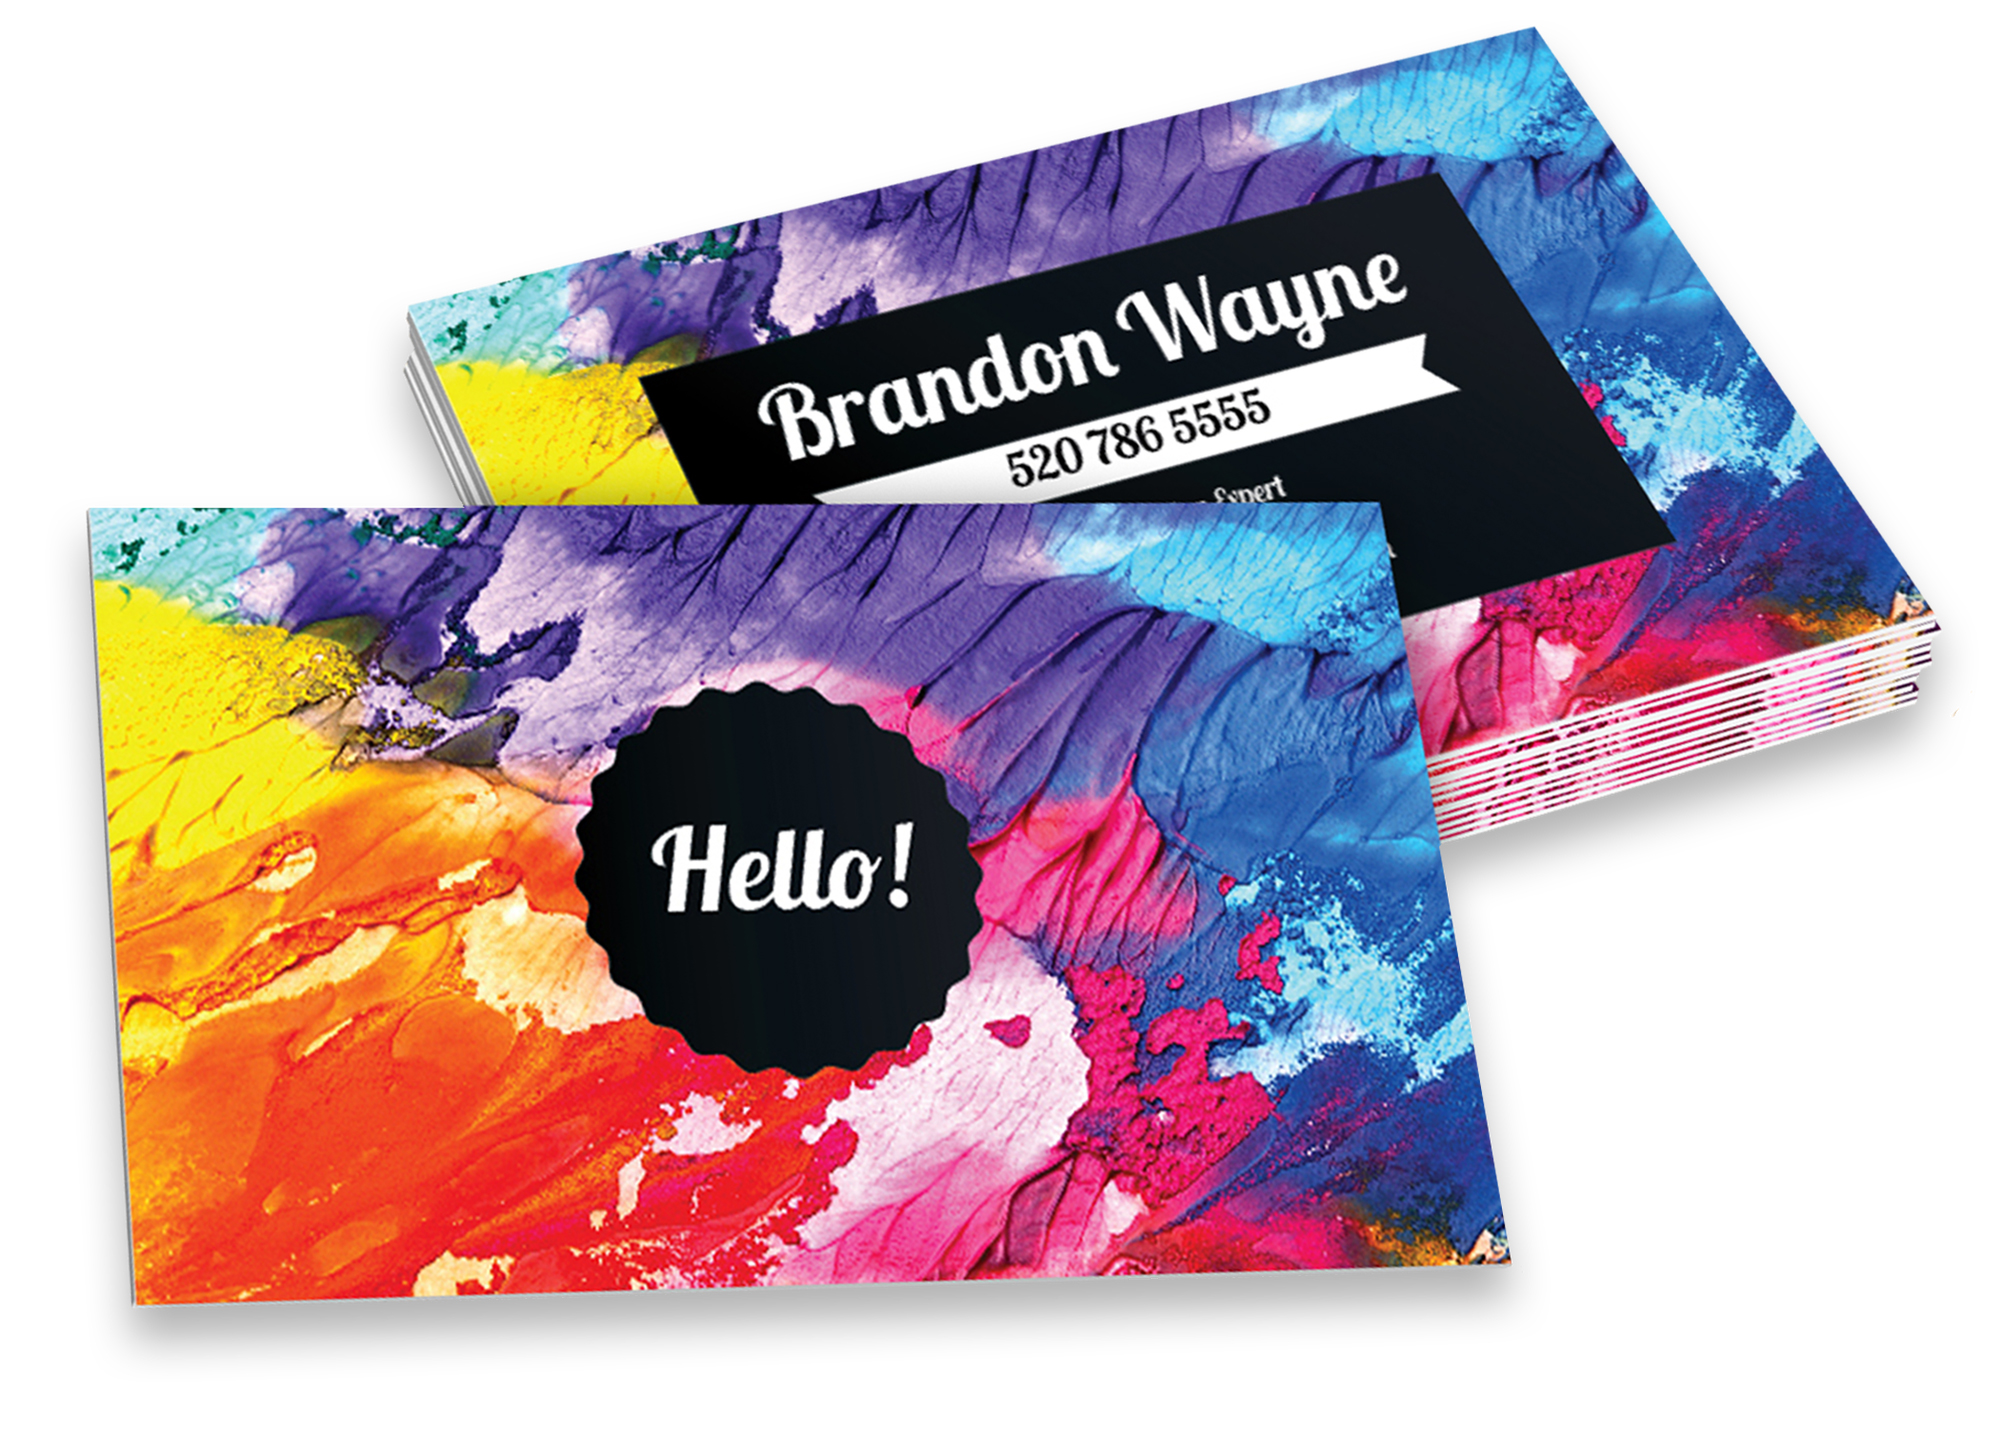 https://k12print.com/images/products_gallery_images/standard_business_cards3949.jpg